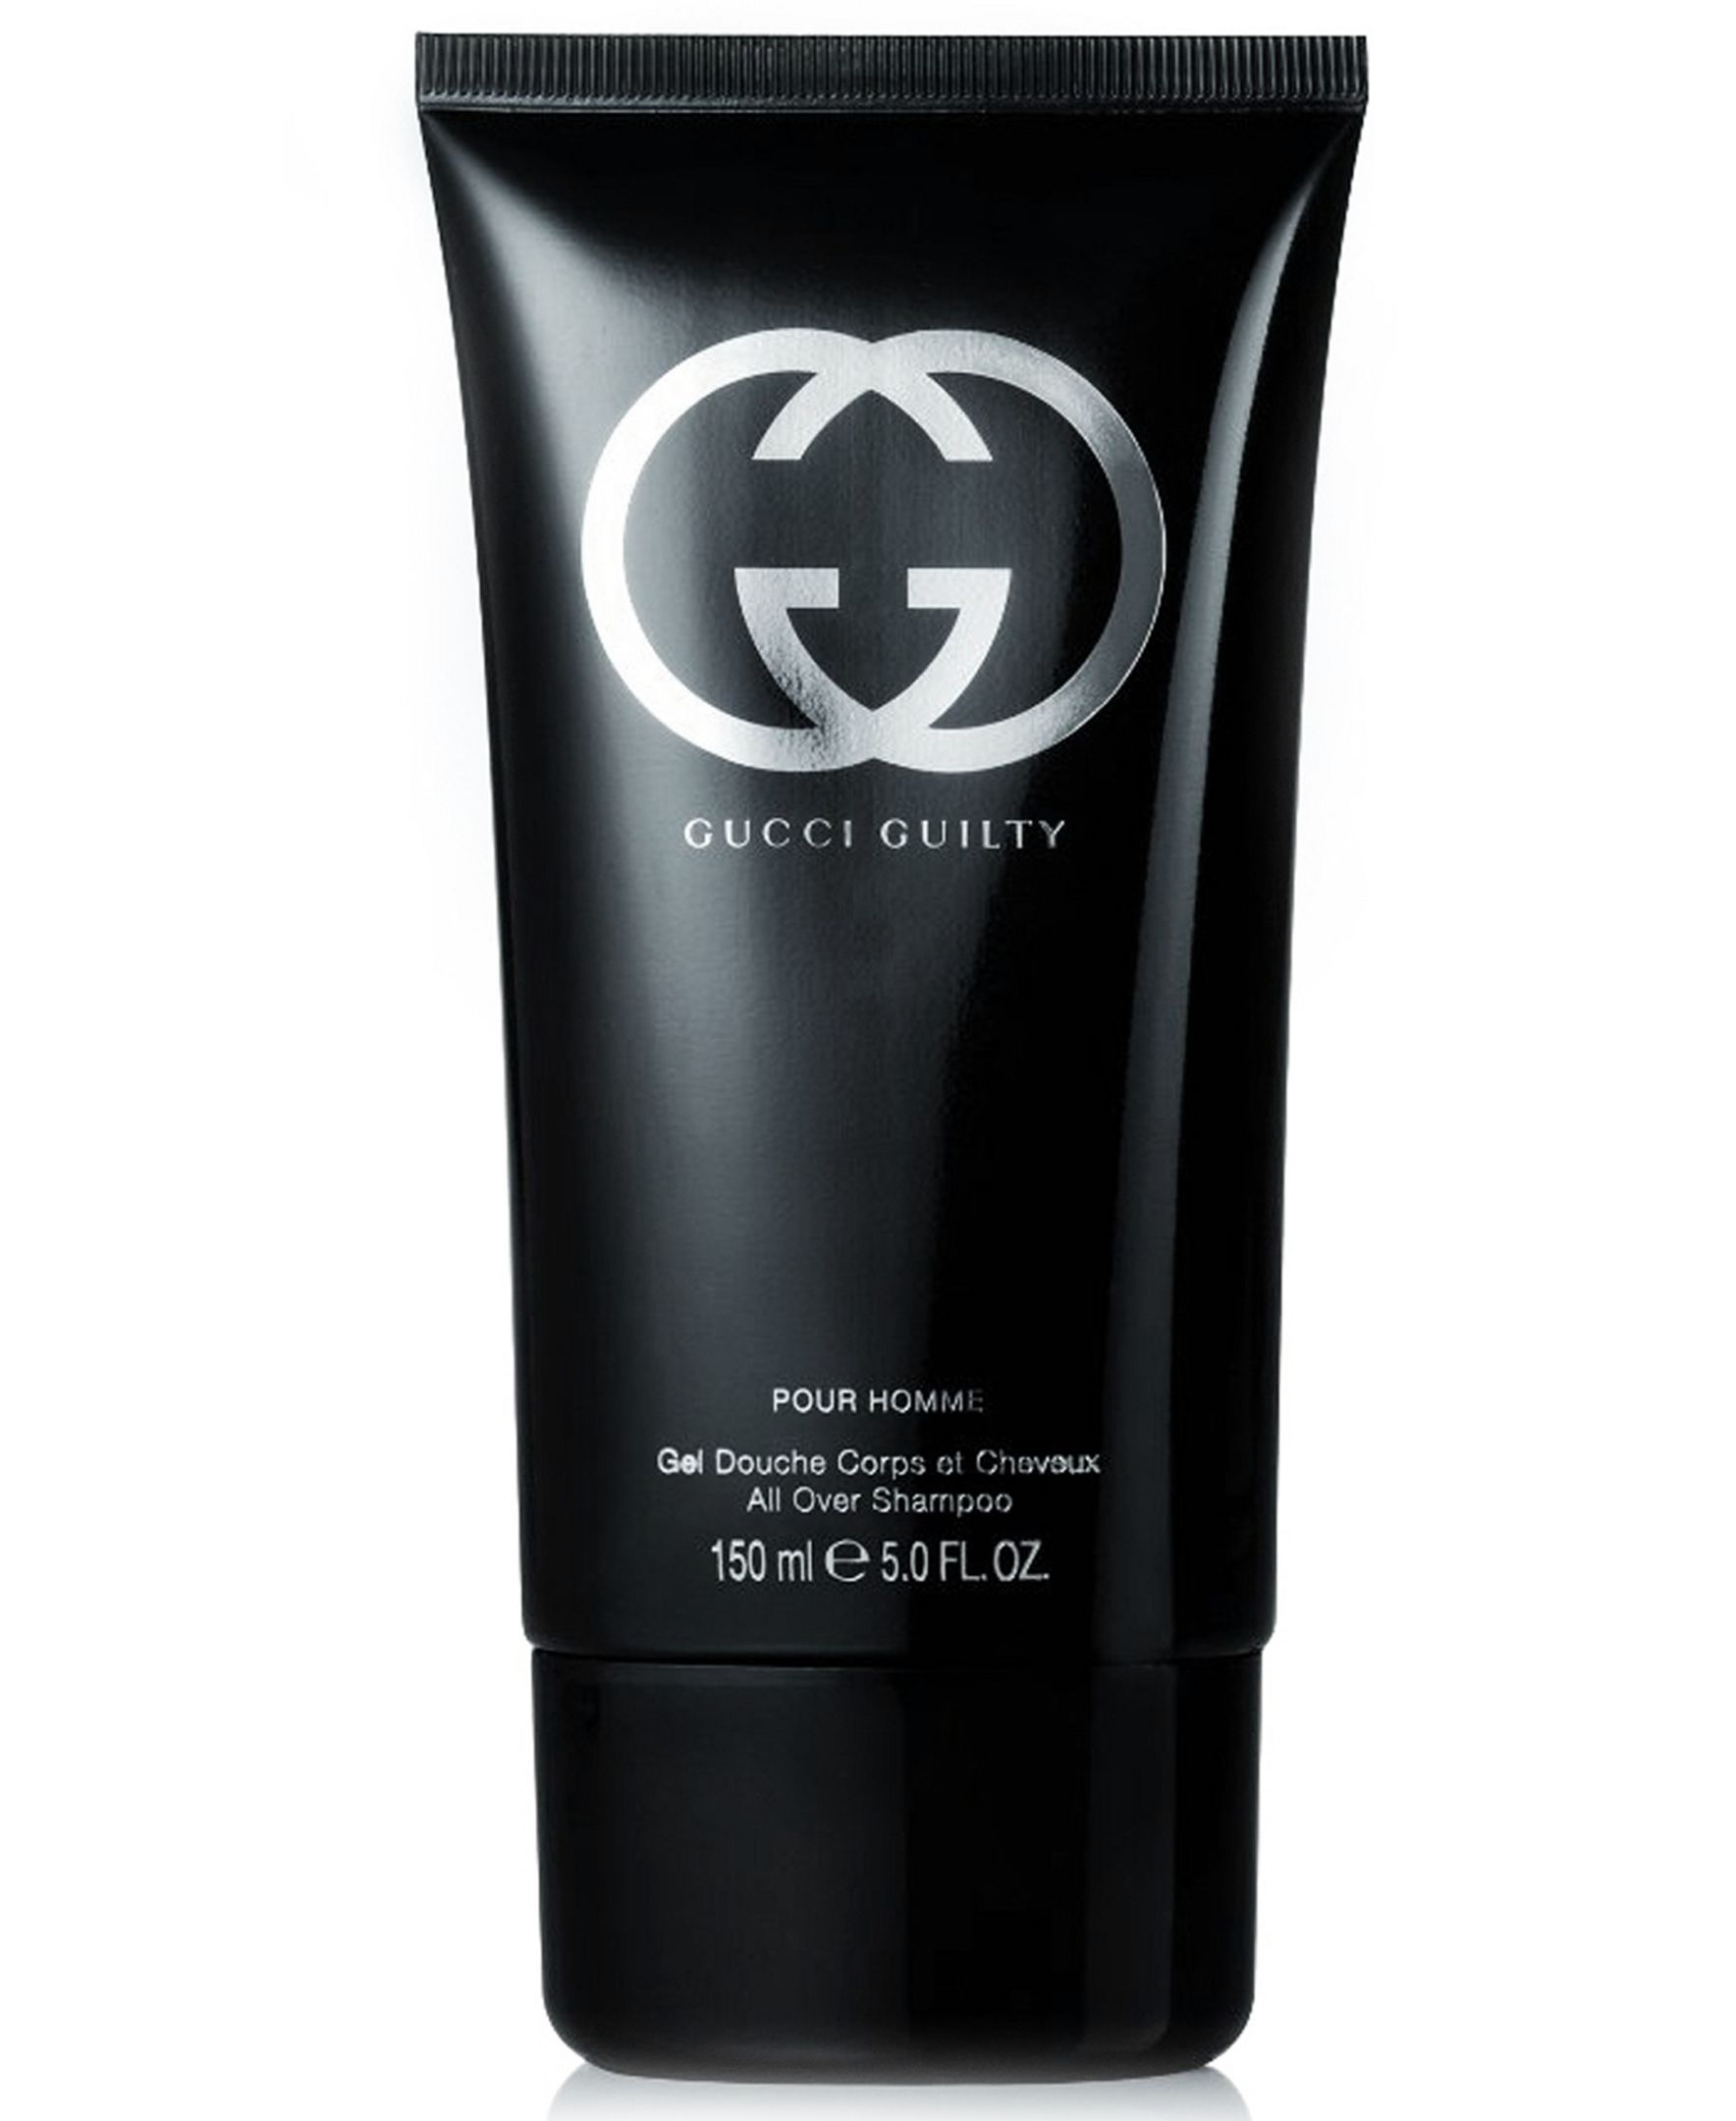 63017f5ff Gucci Guilty Pour Homme All Over Shampoo, 5.0 oz | Products | Shower ...